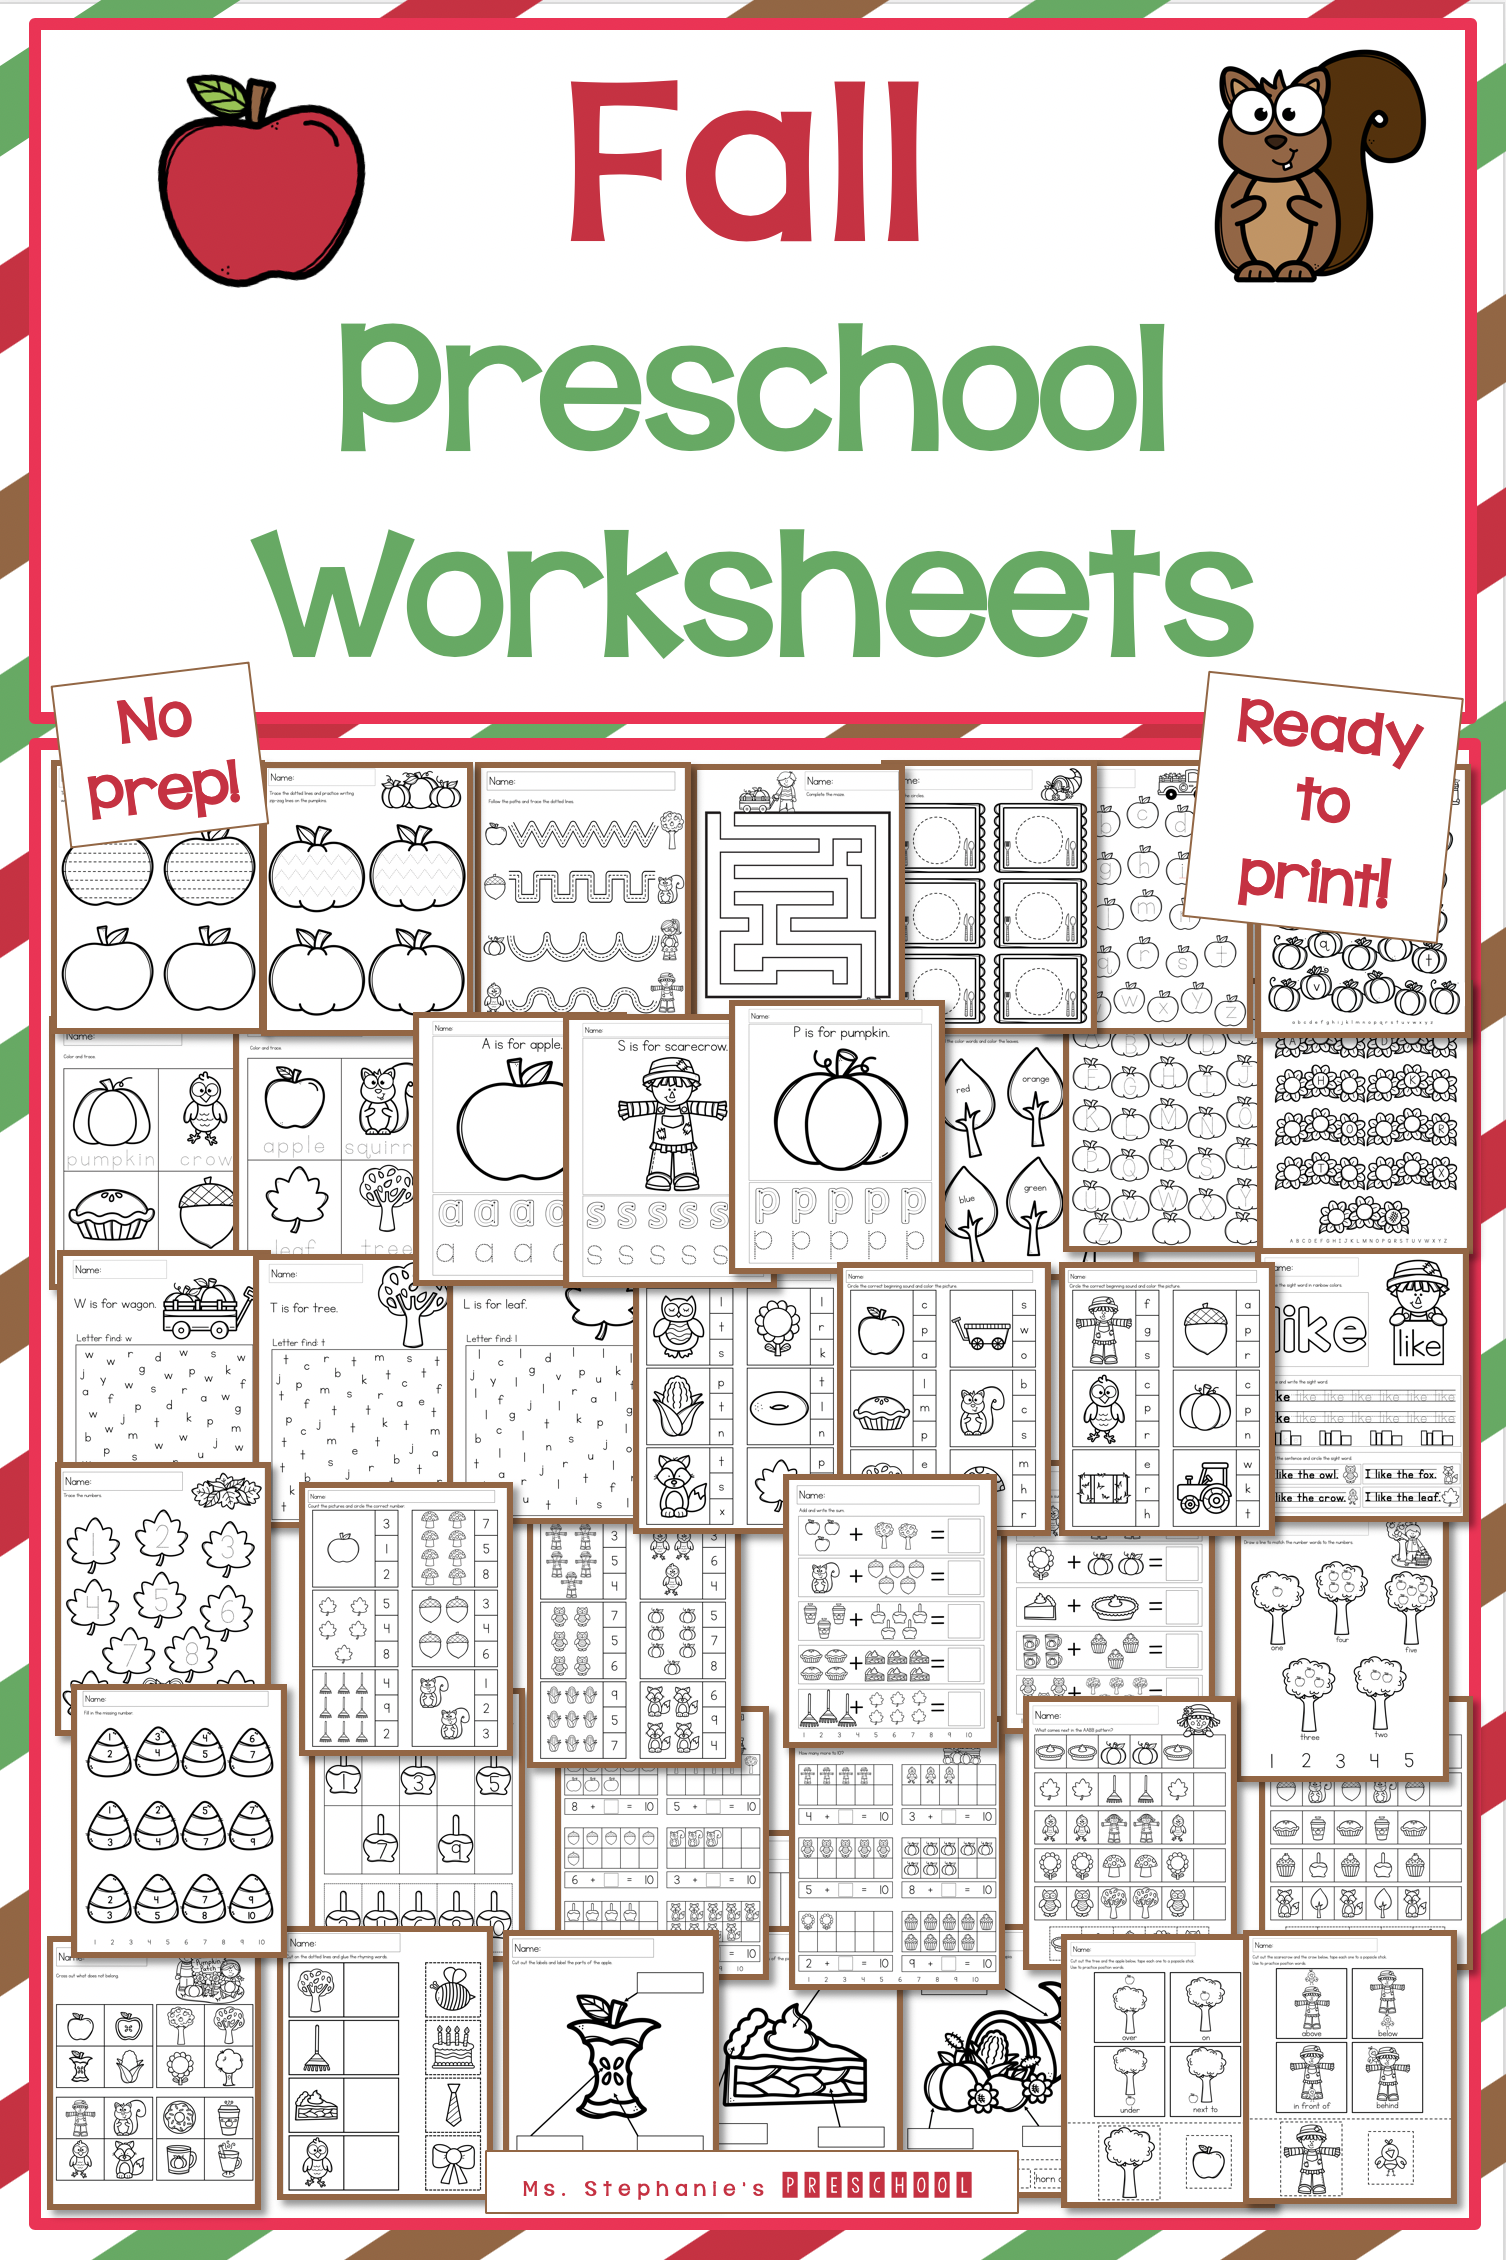 Fall Preschool Worksheets In